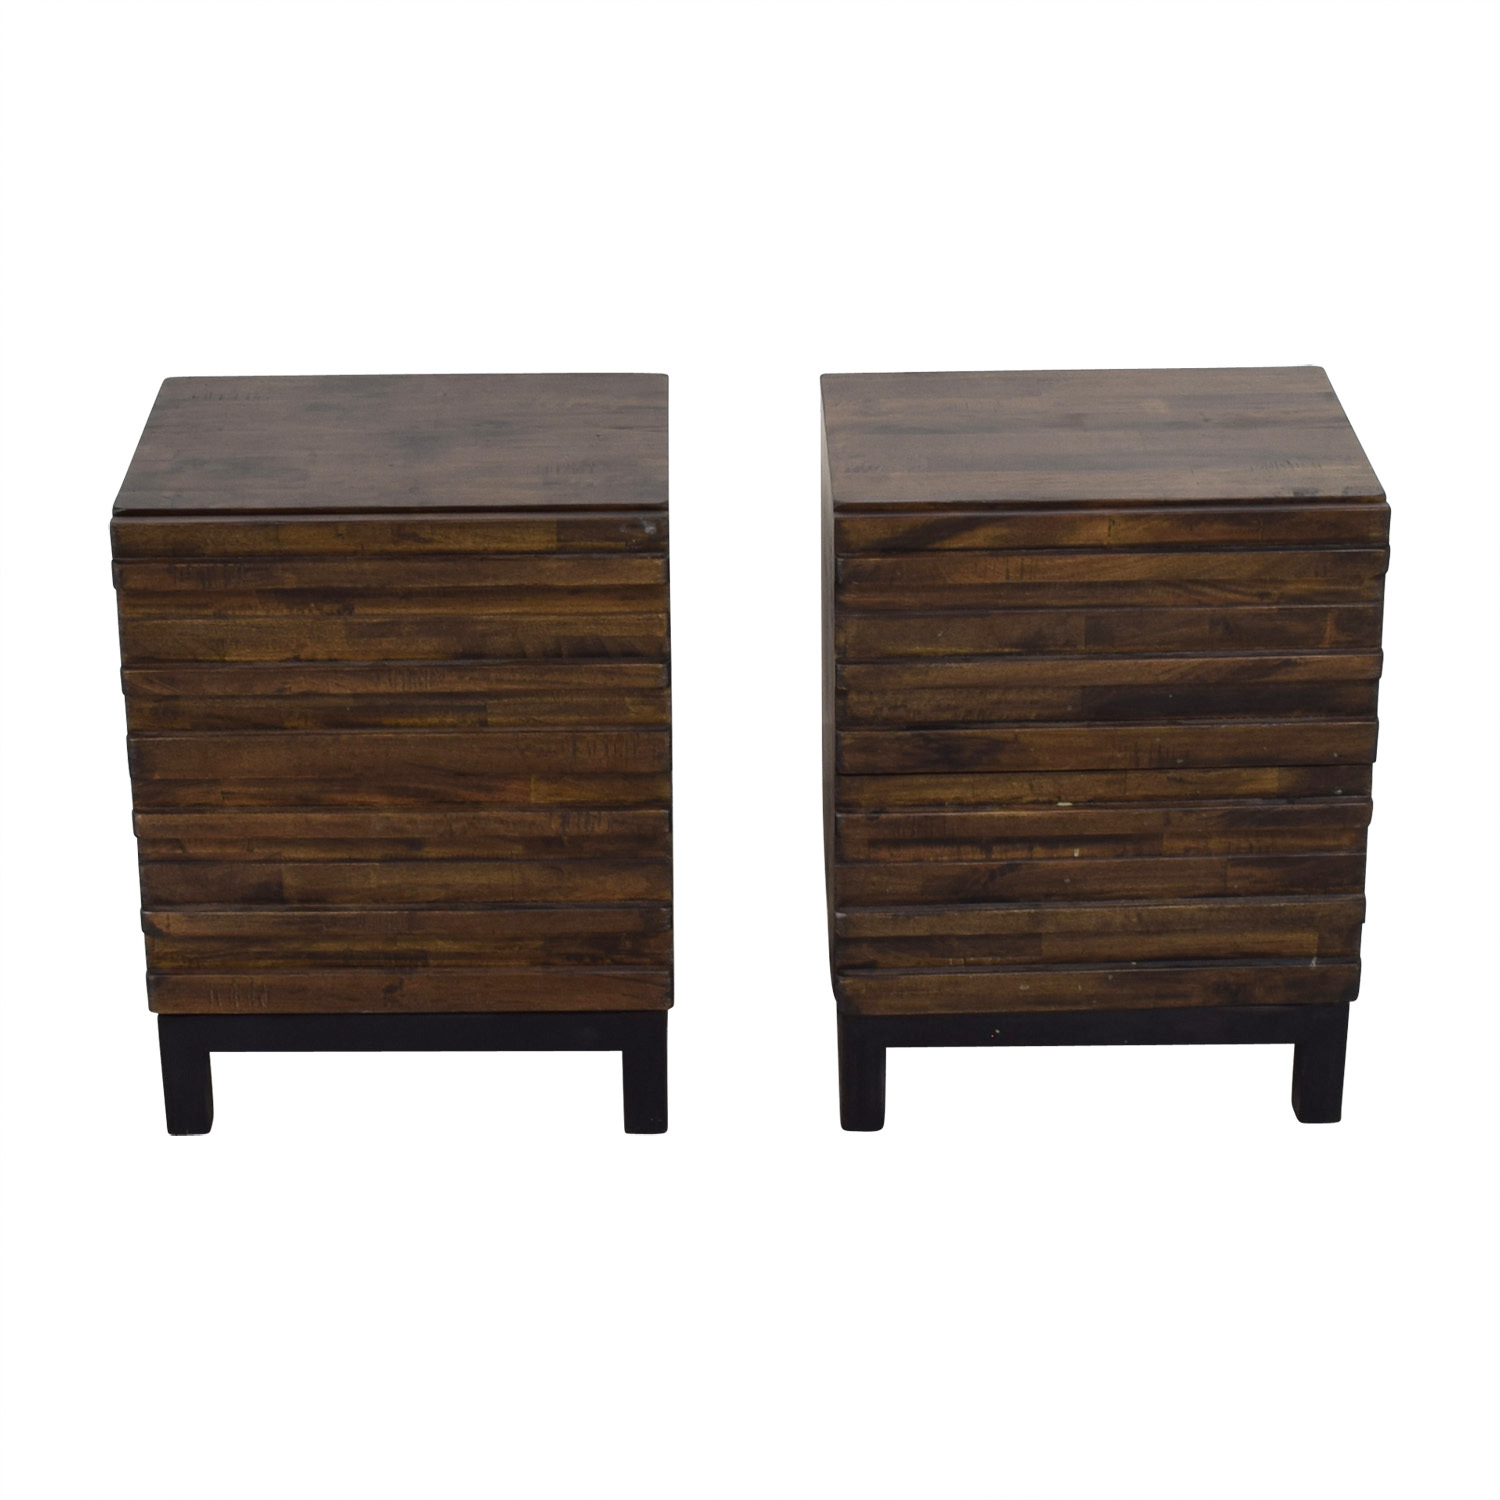 Raymour & Flanigan Raymour & Flanigan Nara Sahara Two-Drawer End Tables price